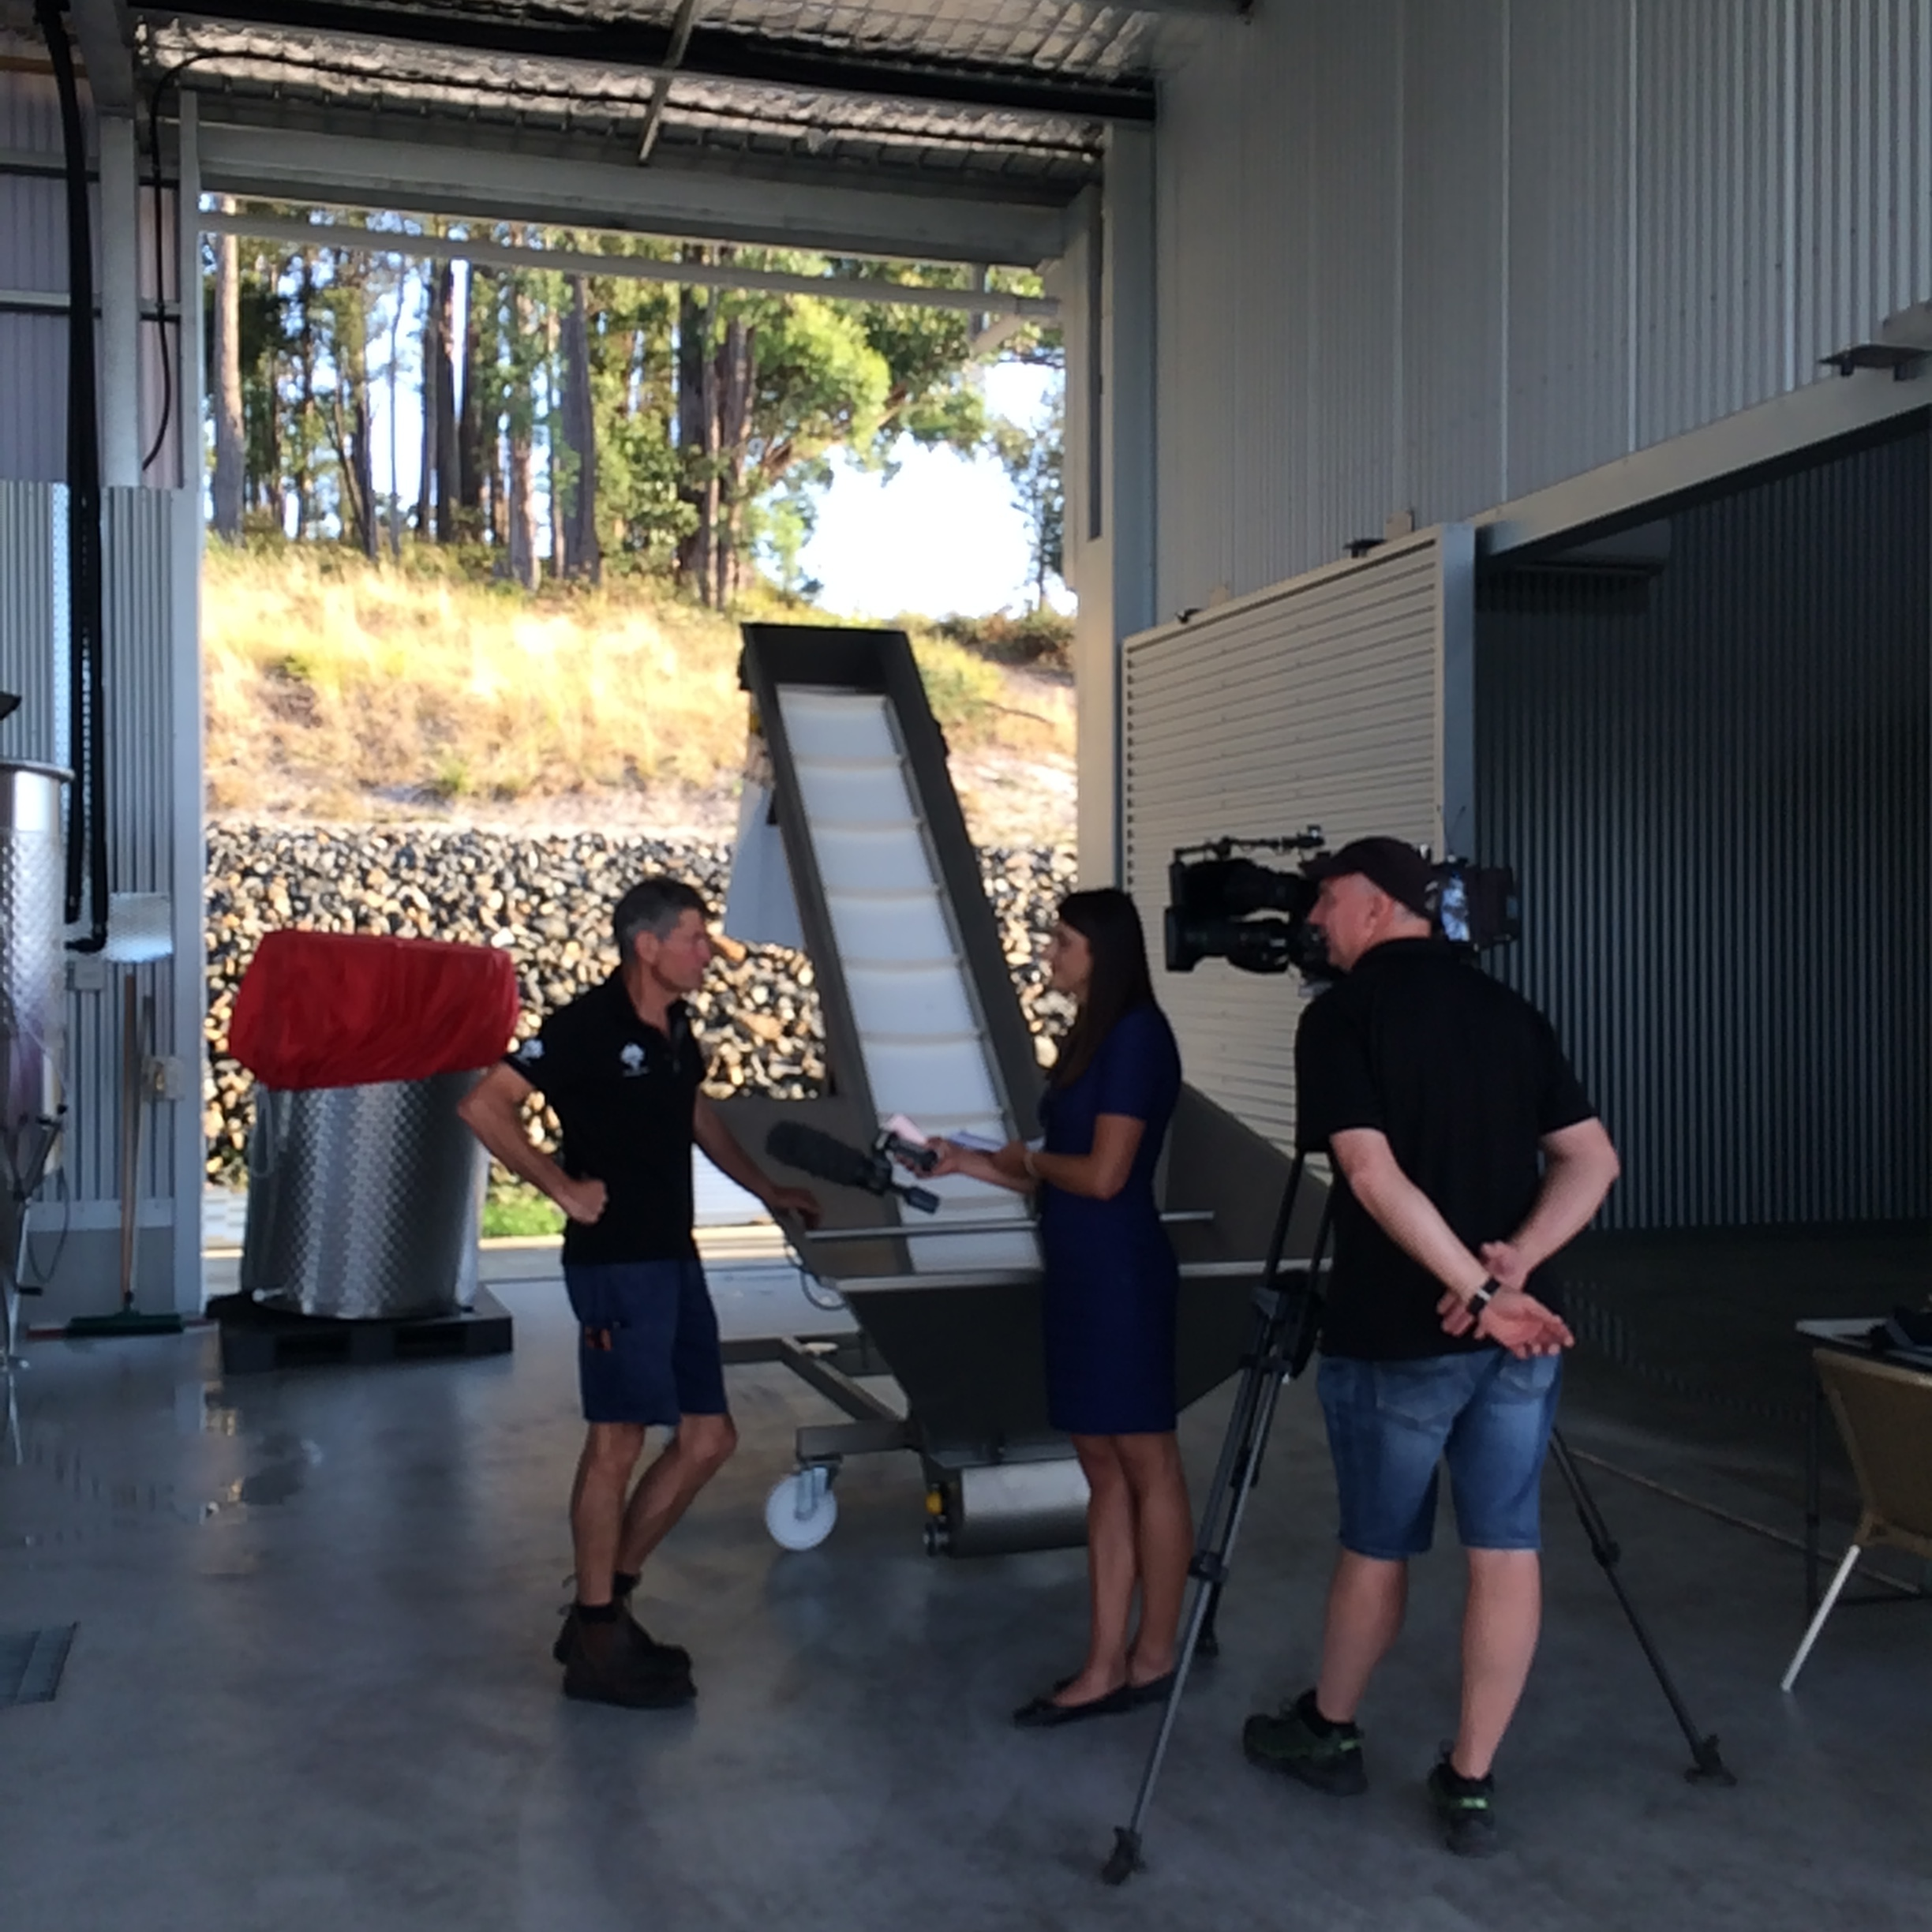 ABC TV News dropped in to film a story on the progress of vintage 2017